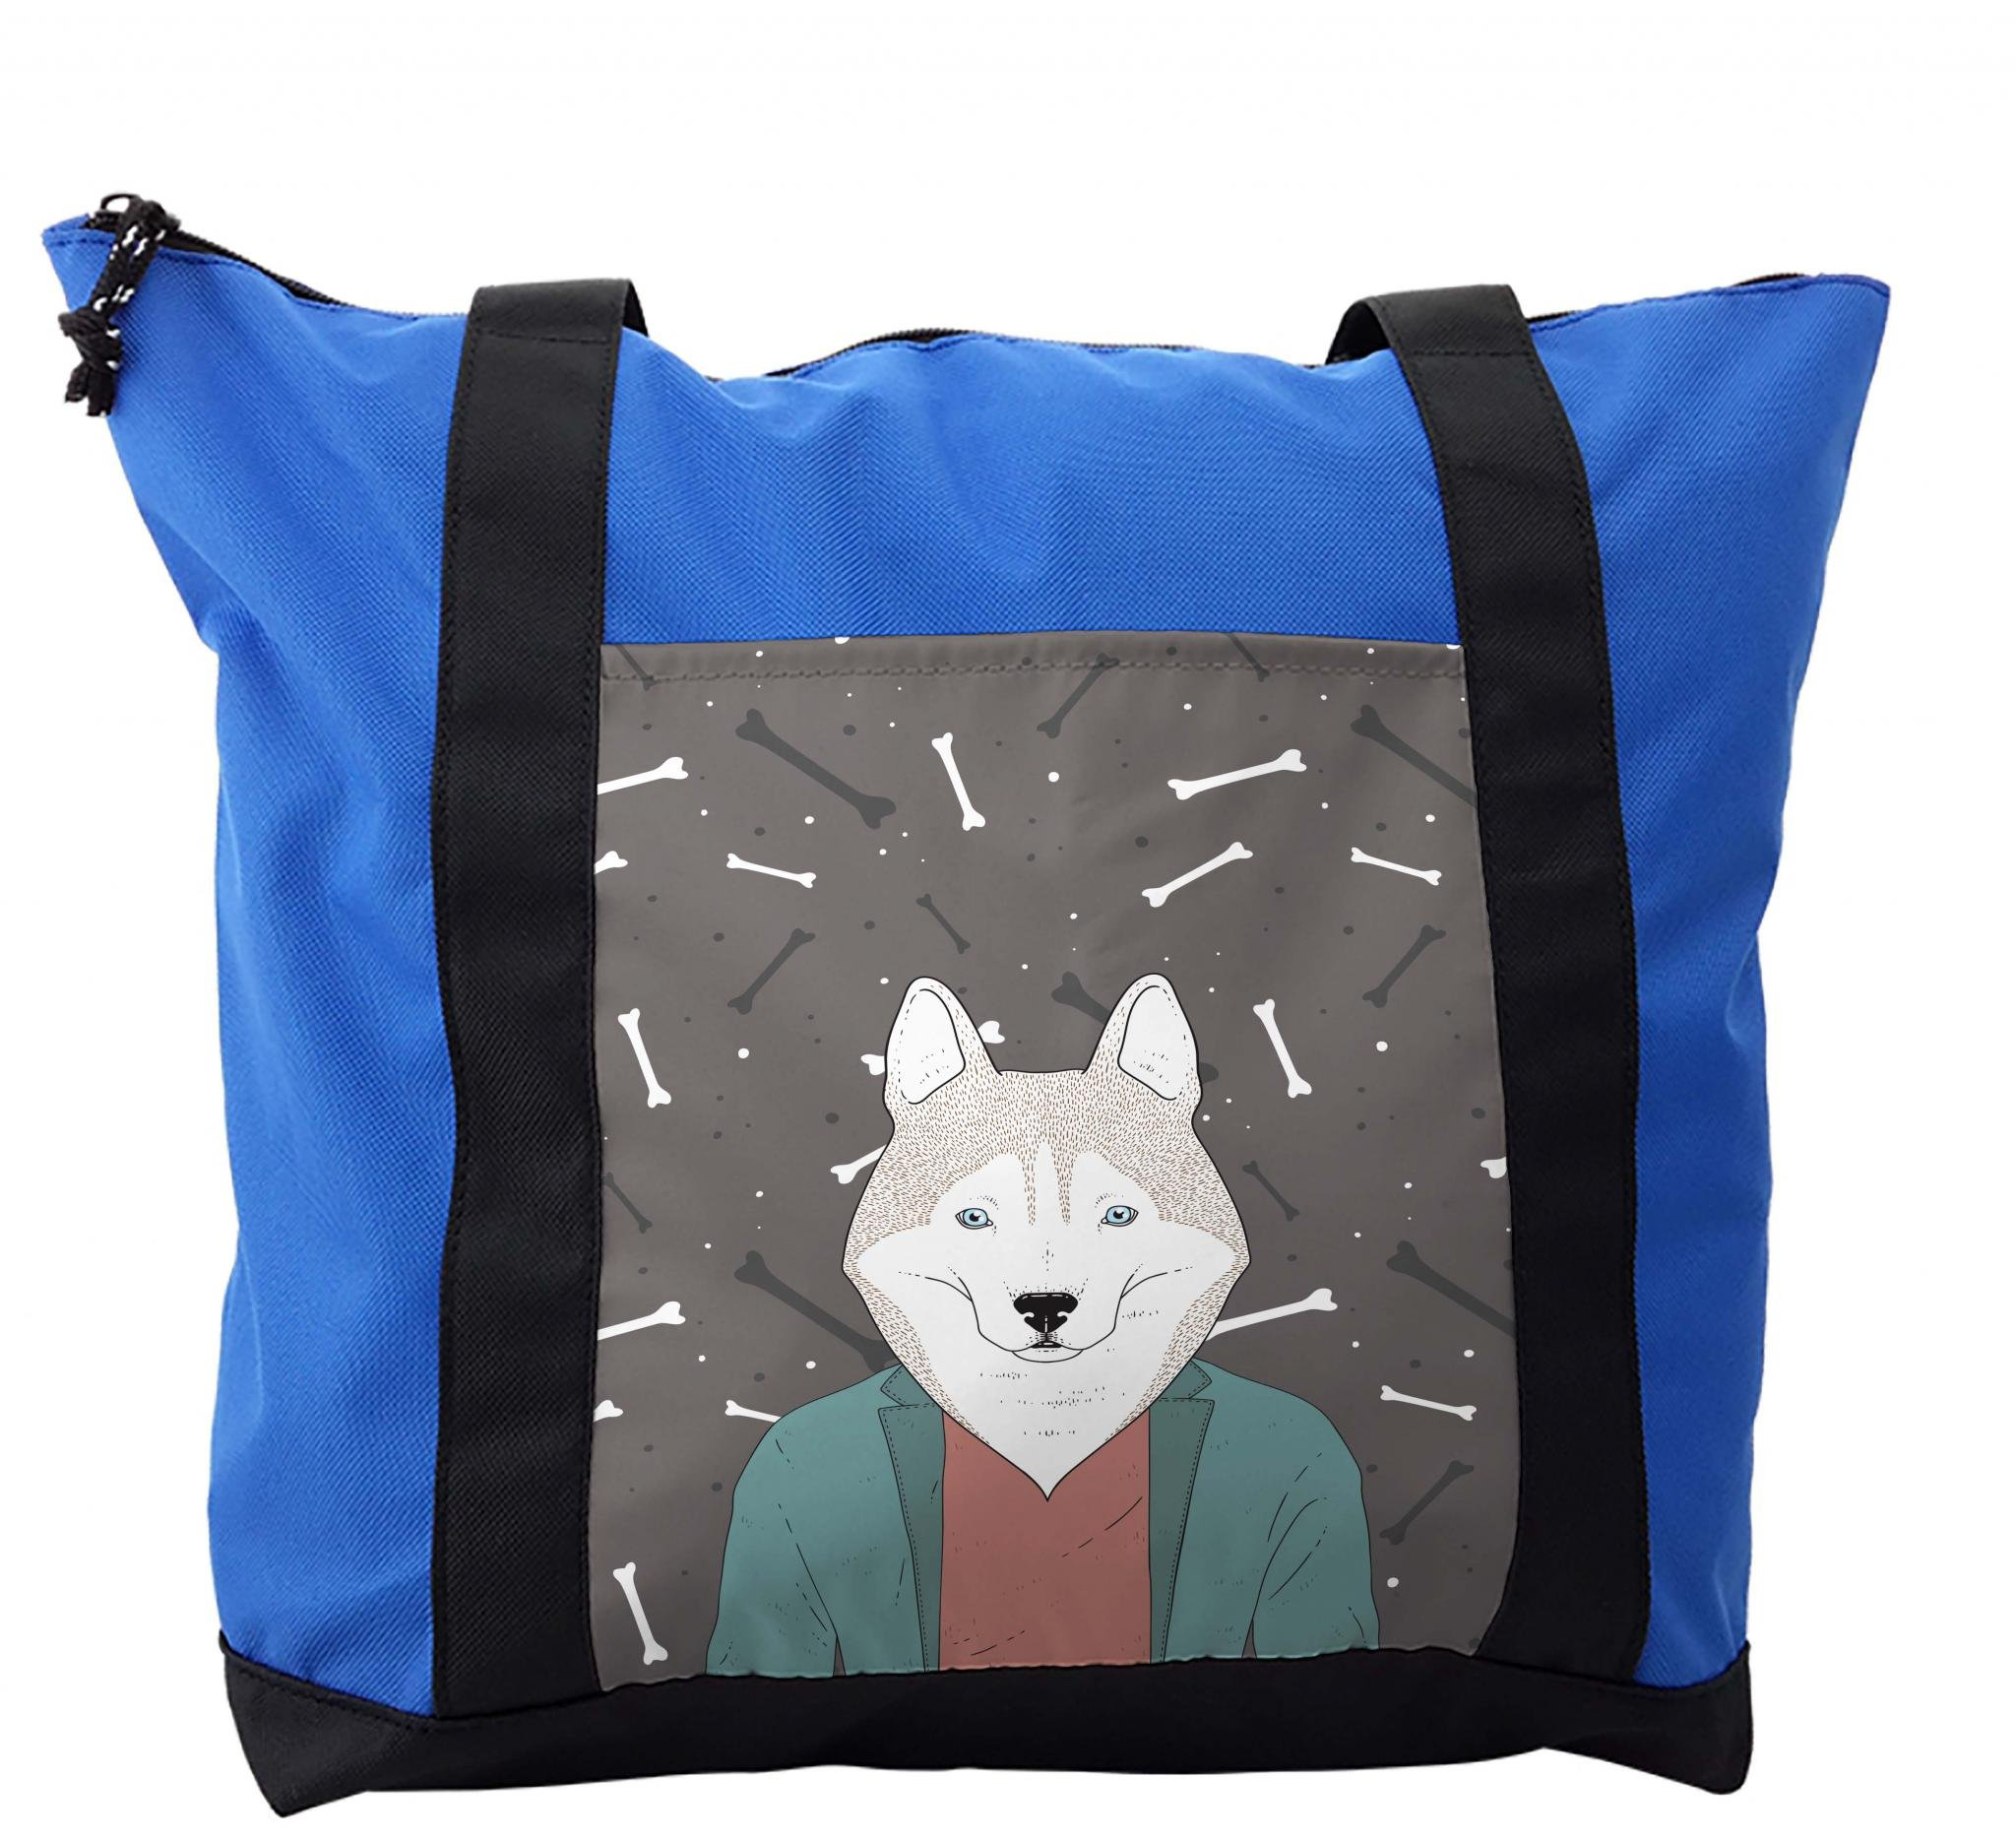 Lunarable Husky Shoulder Bag, Hipster Dog in Blazer Jacket, Durable with Zipper by Lunarable